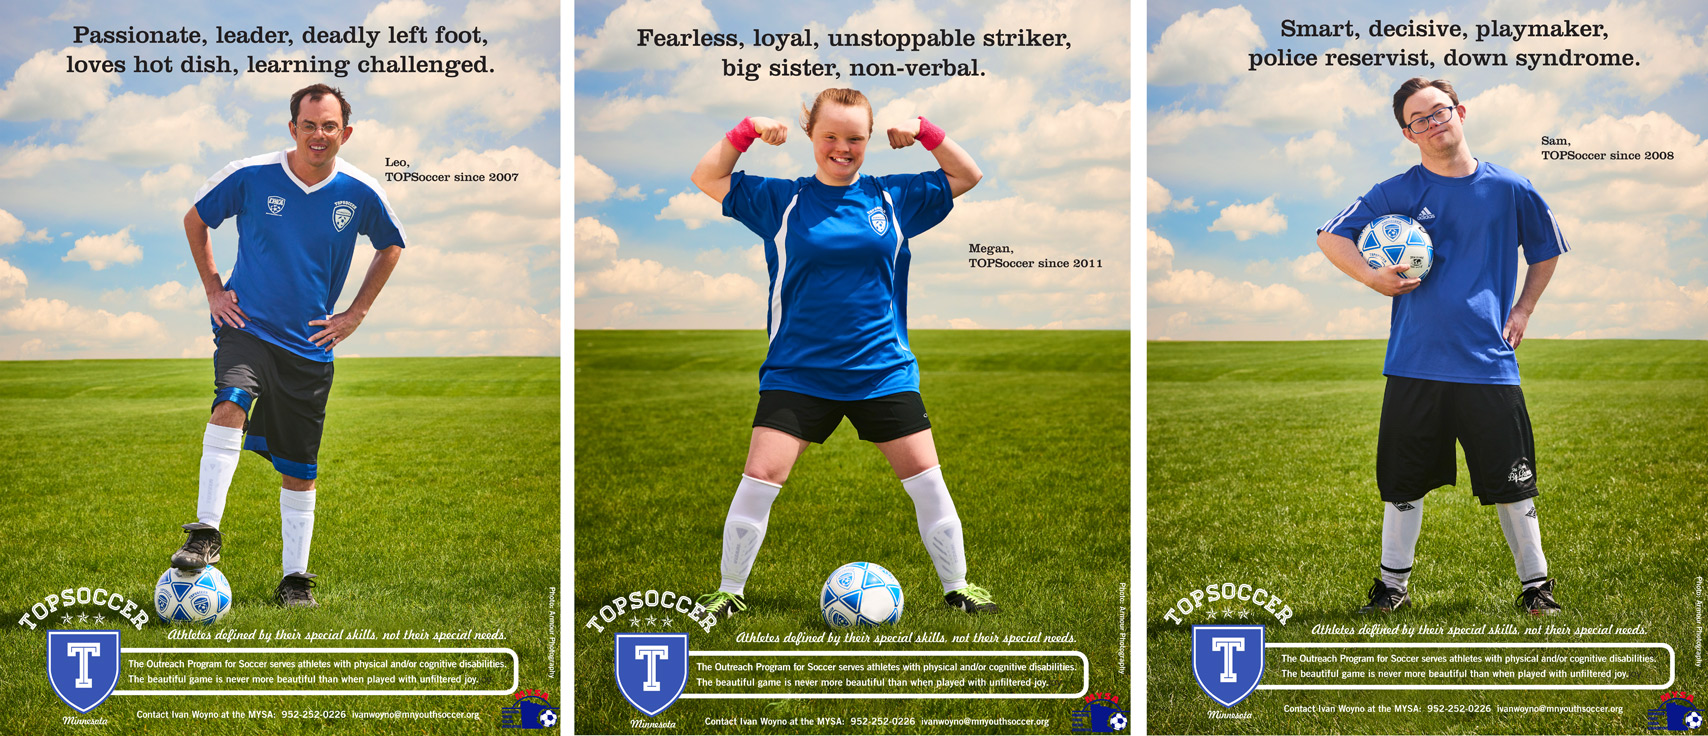 Top Soccer Down Syndrome woman on field soccer ball Strong